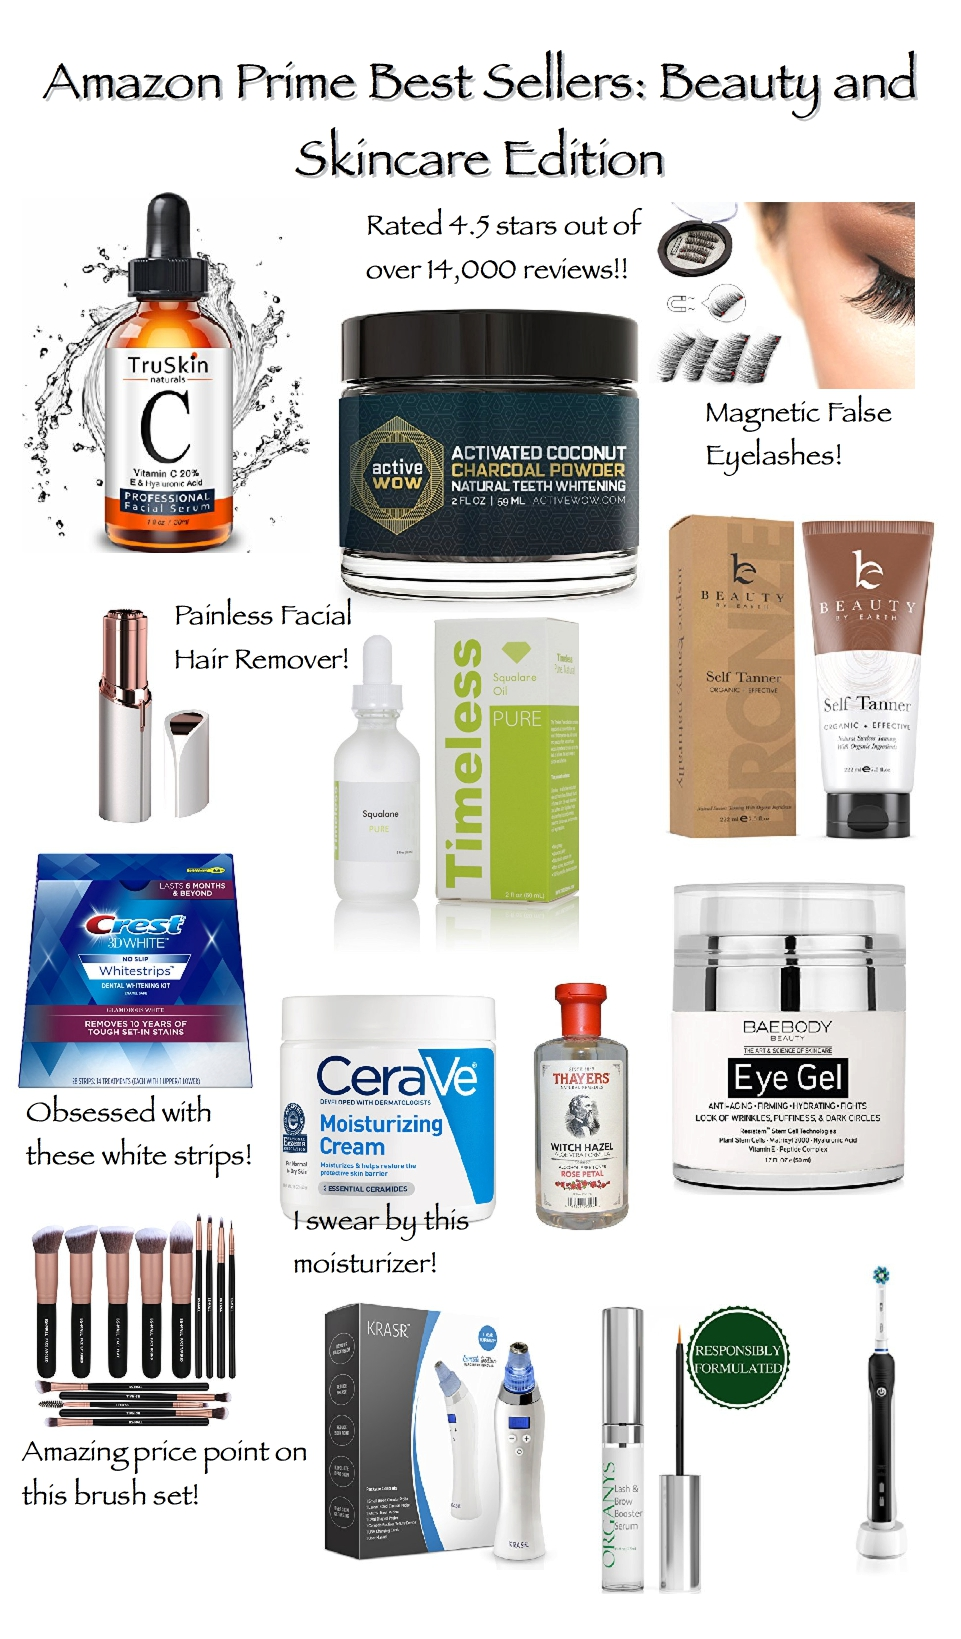 amazon prime best sellers beauty and skincare